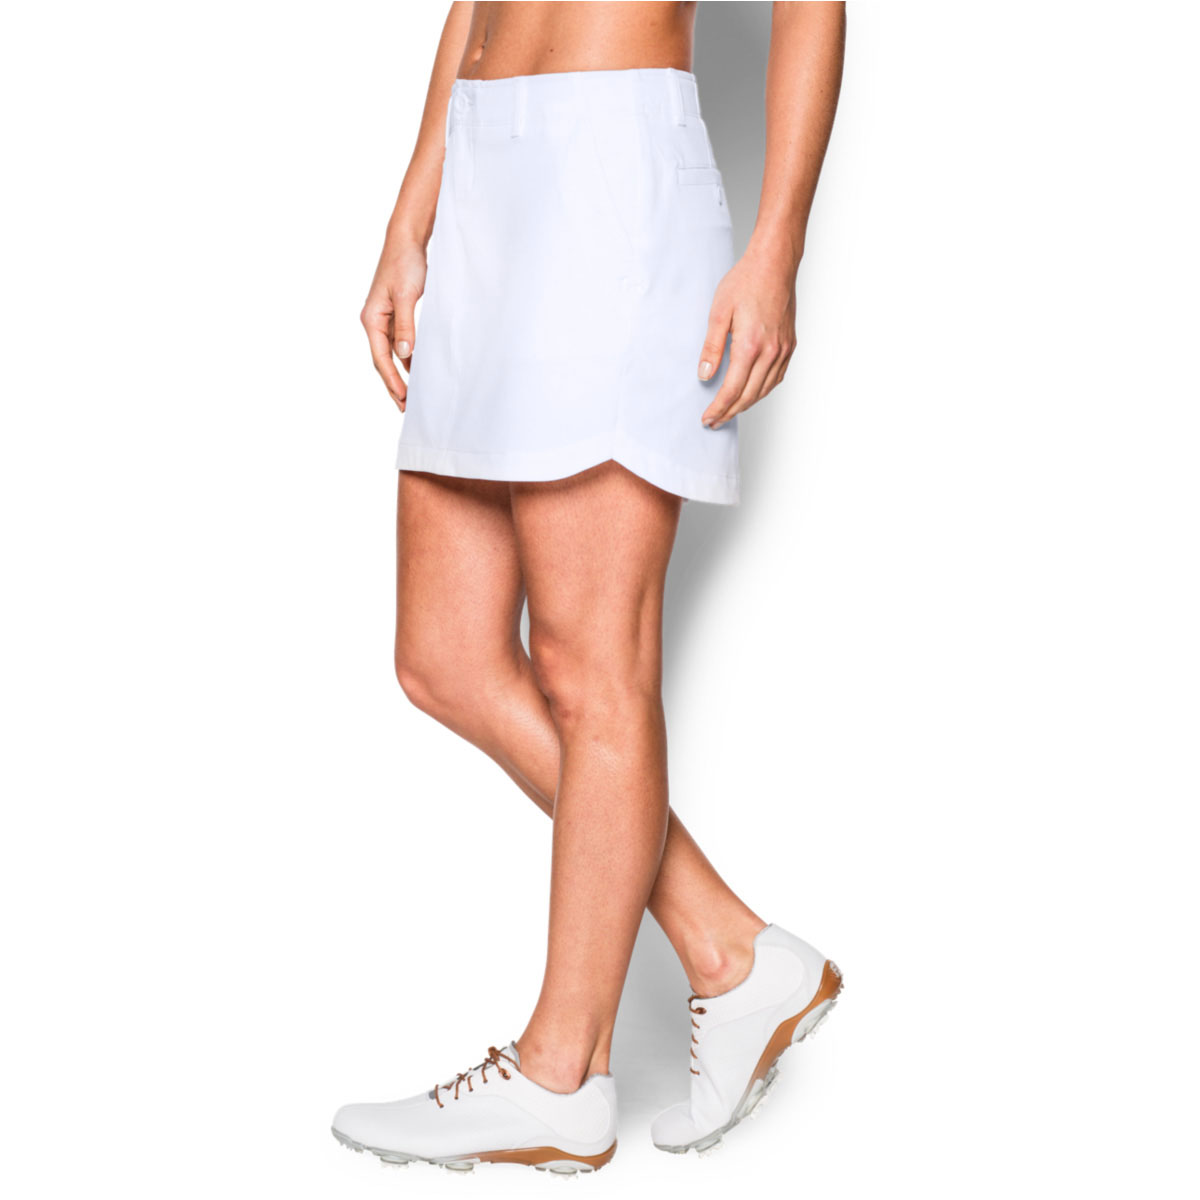 Simple Buy Womens Golf Skirts Amp Skorts For Lowest Prices Online